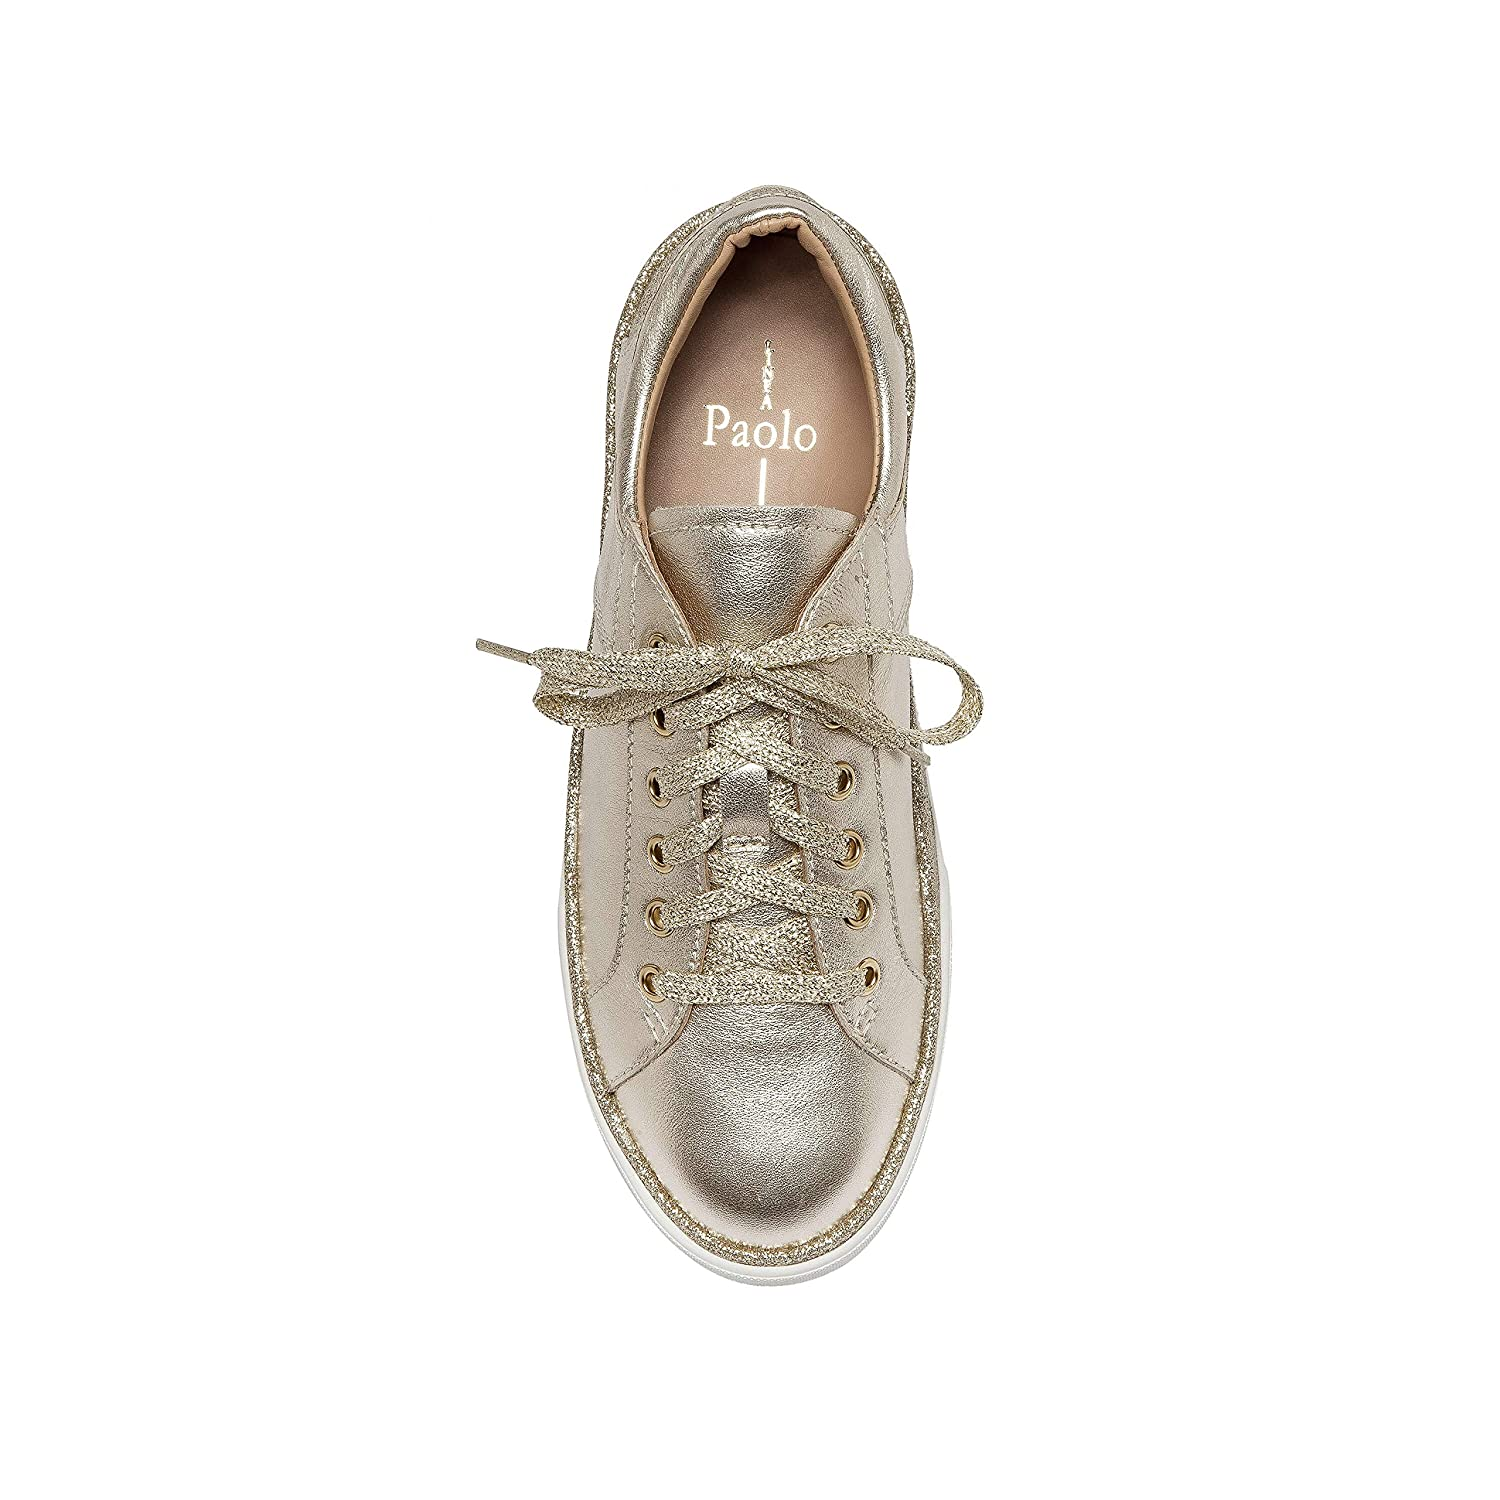 New Spring Sporty Handcrafted Lace Up Leather and Glitter Sneaker/  Linea Paolo Katz/